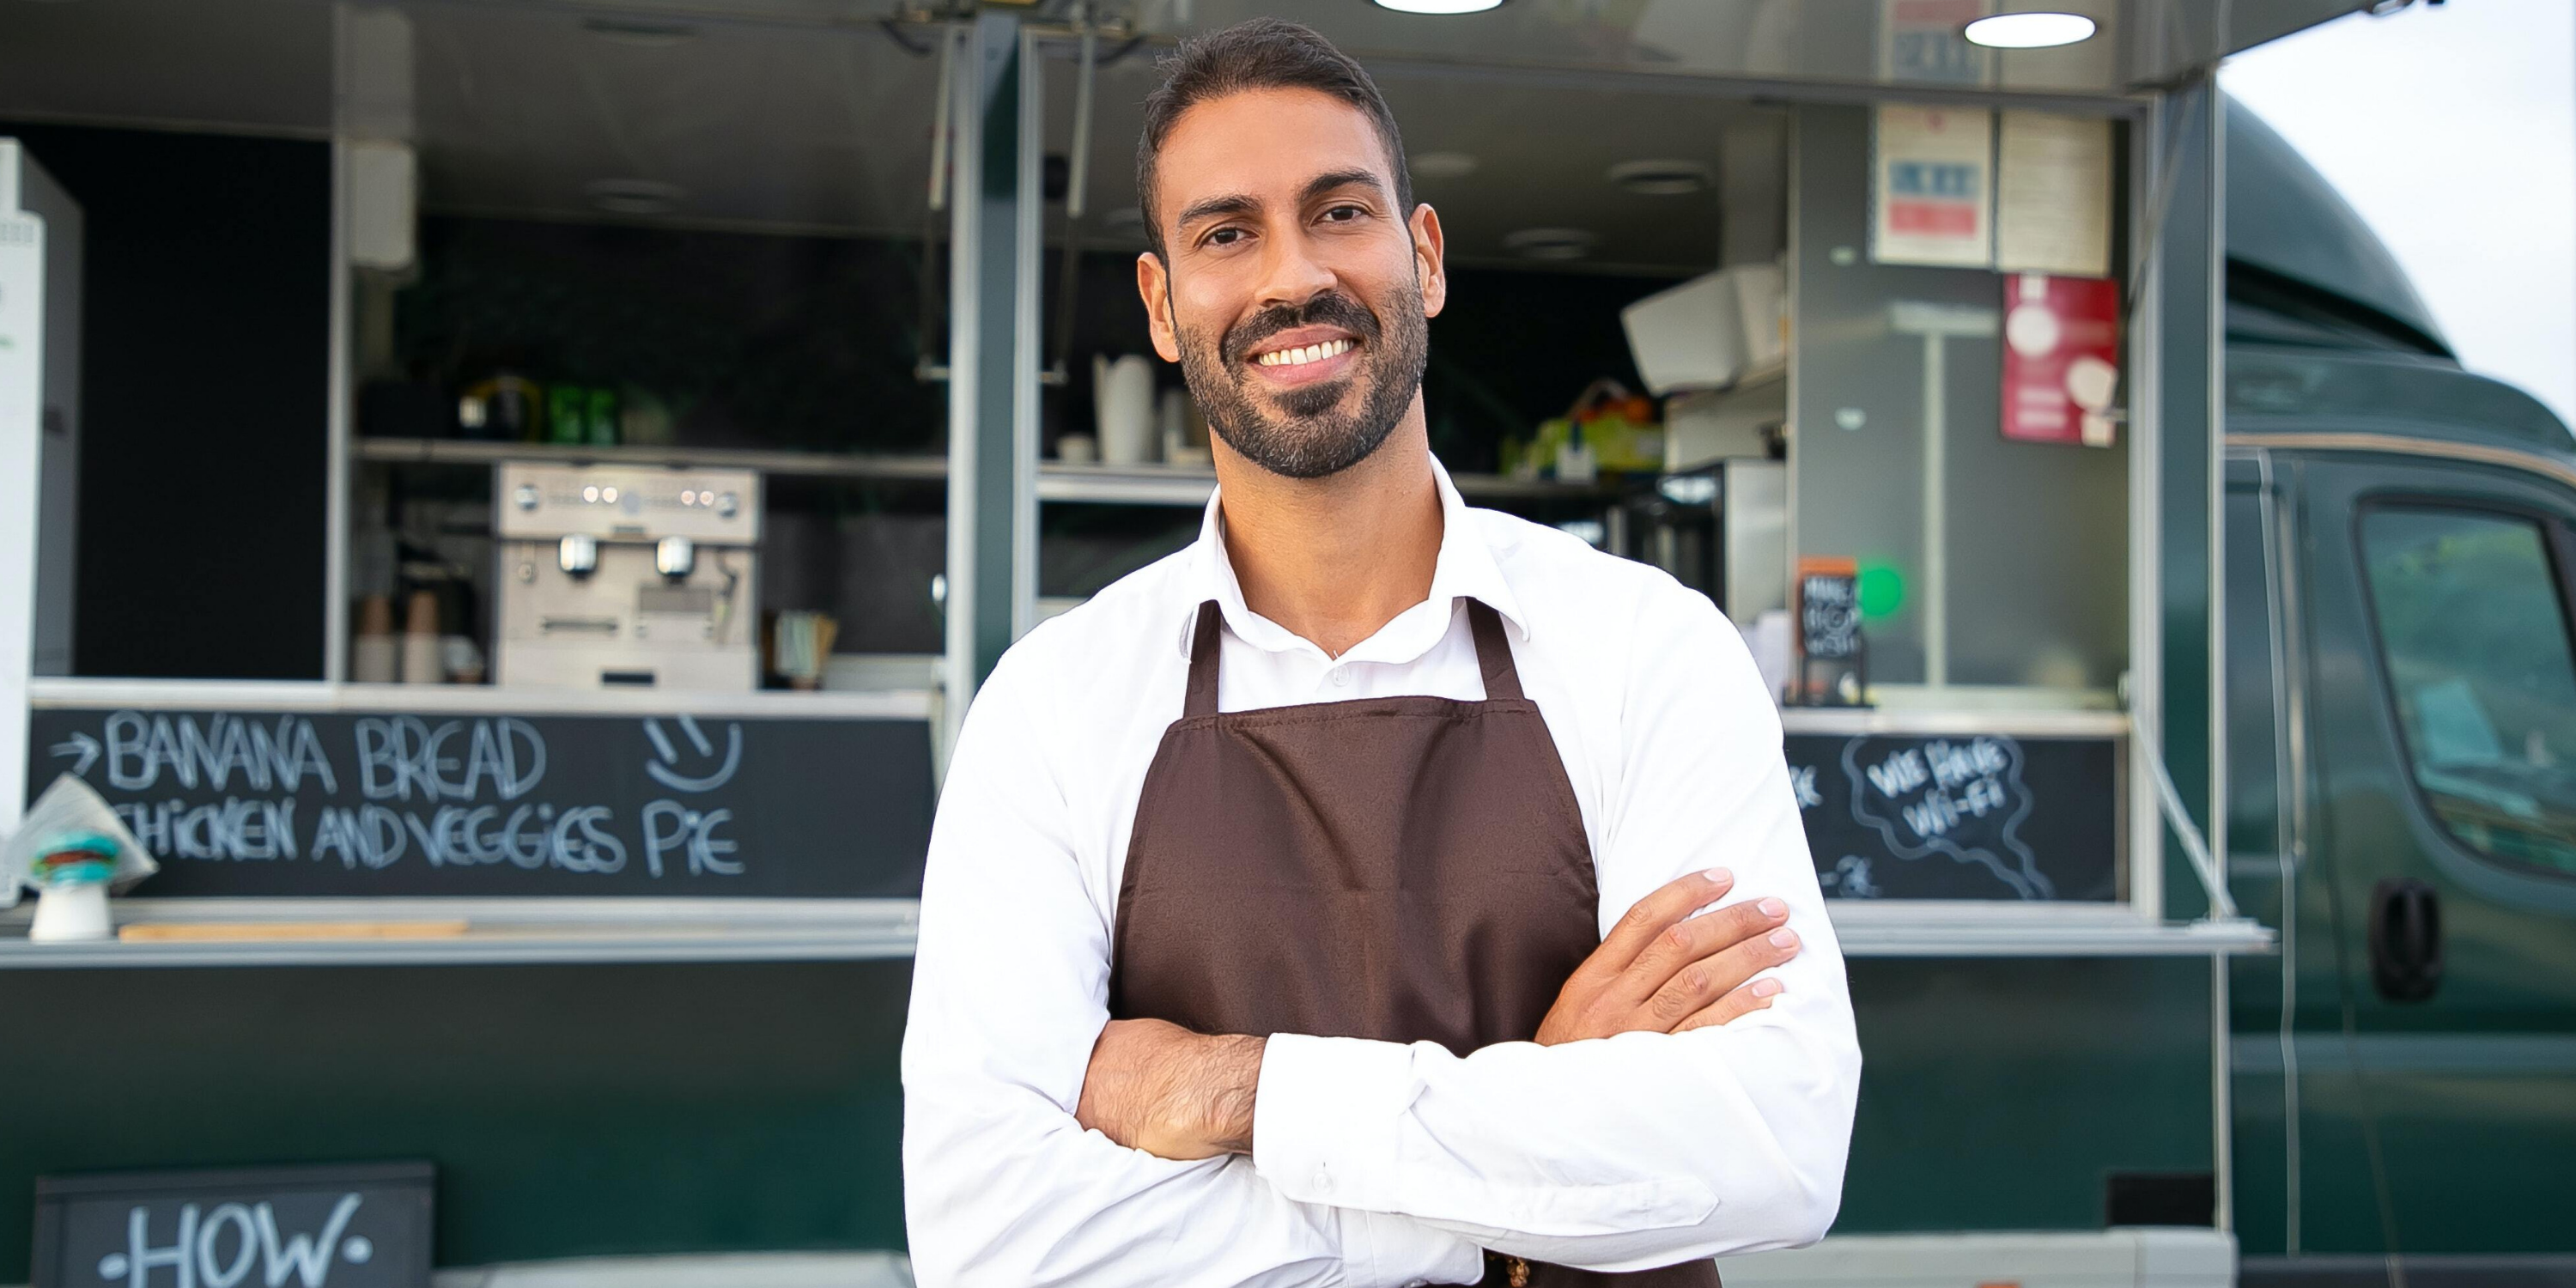 Small business owner smiling and wearing a brown apron standing in front of his food truck